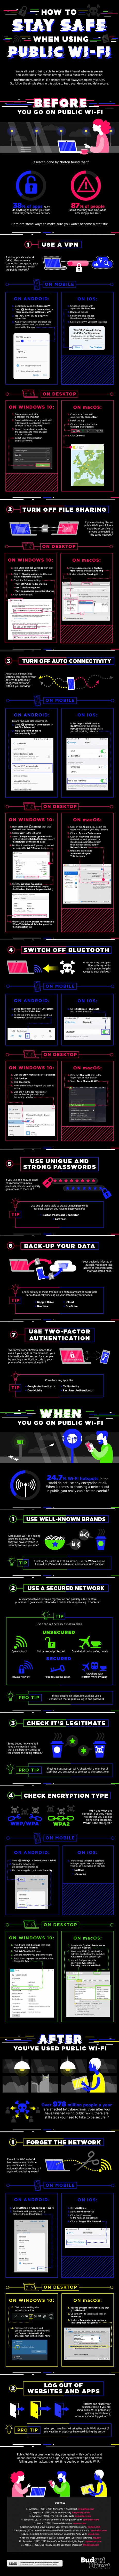 Staying Safe on Public WiFi Infographic